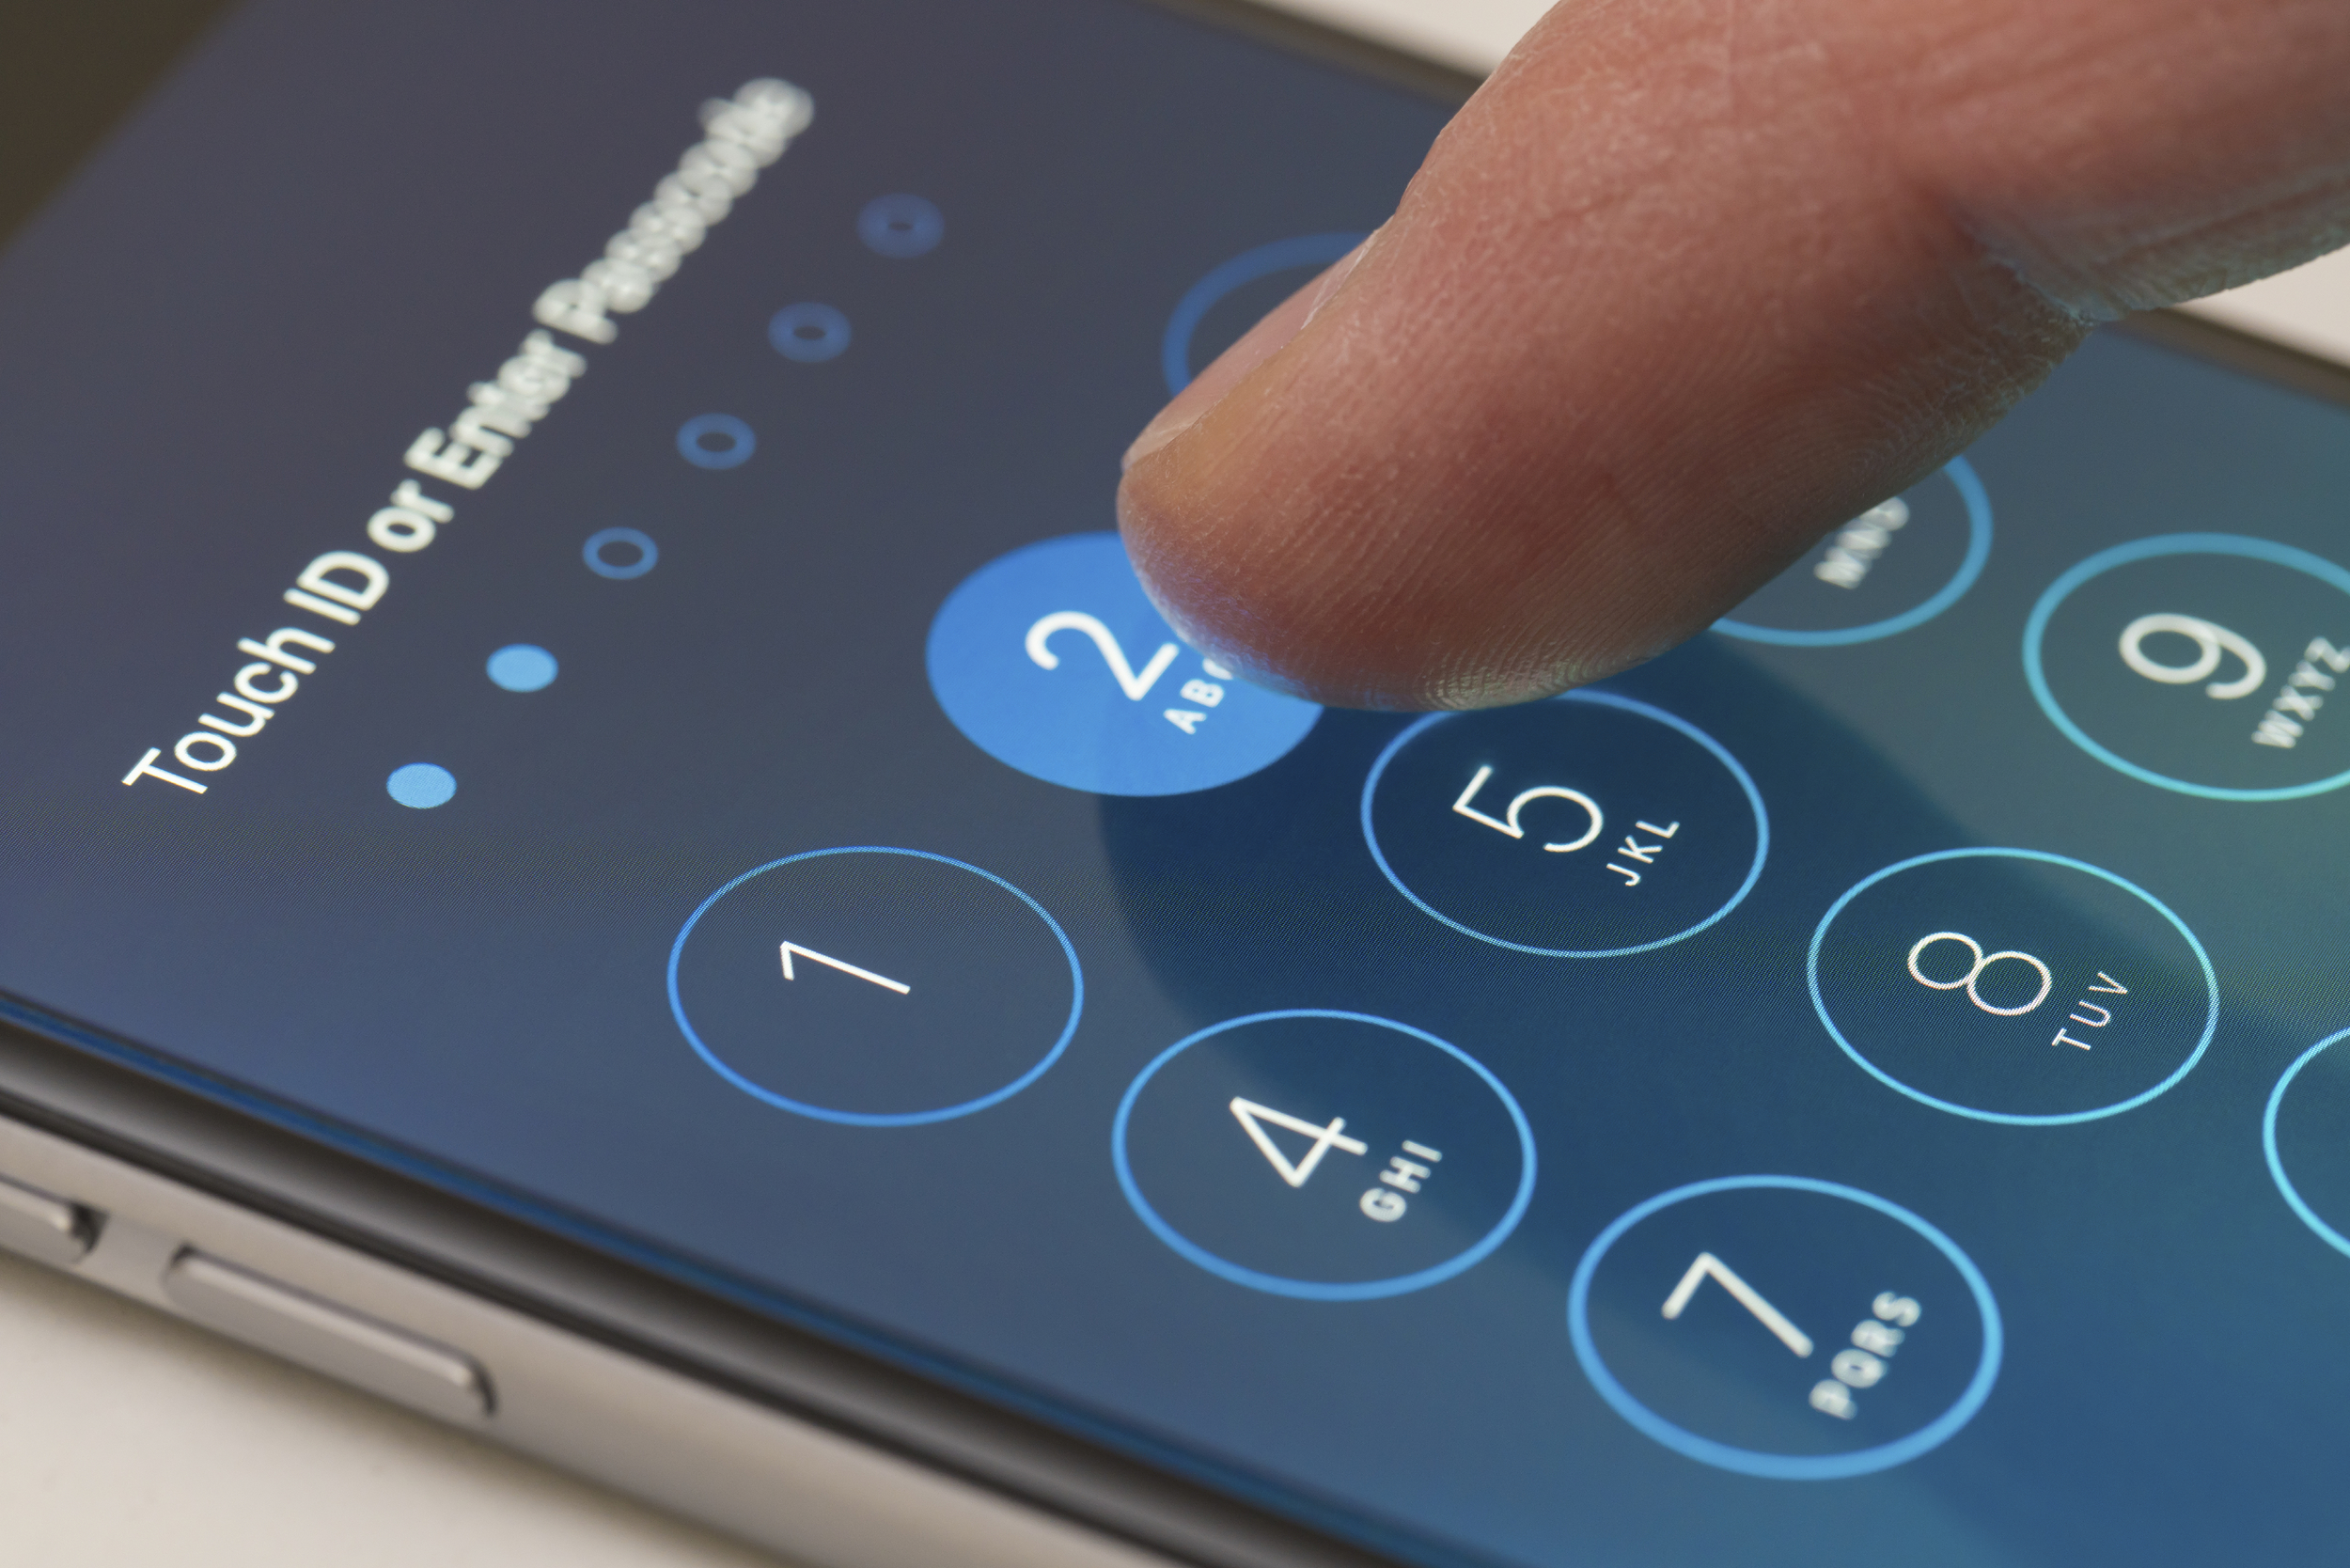 Enter passcode screen of an iPhone running iOS 9